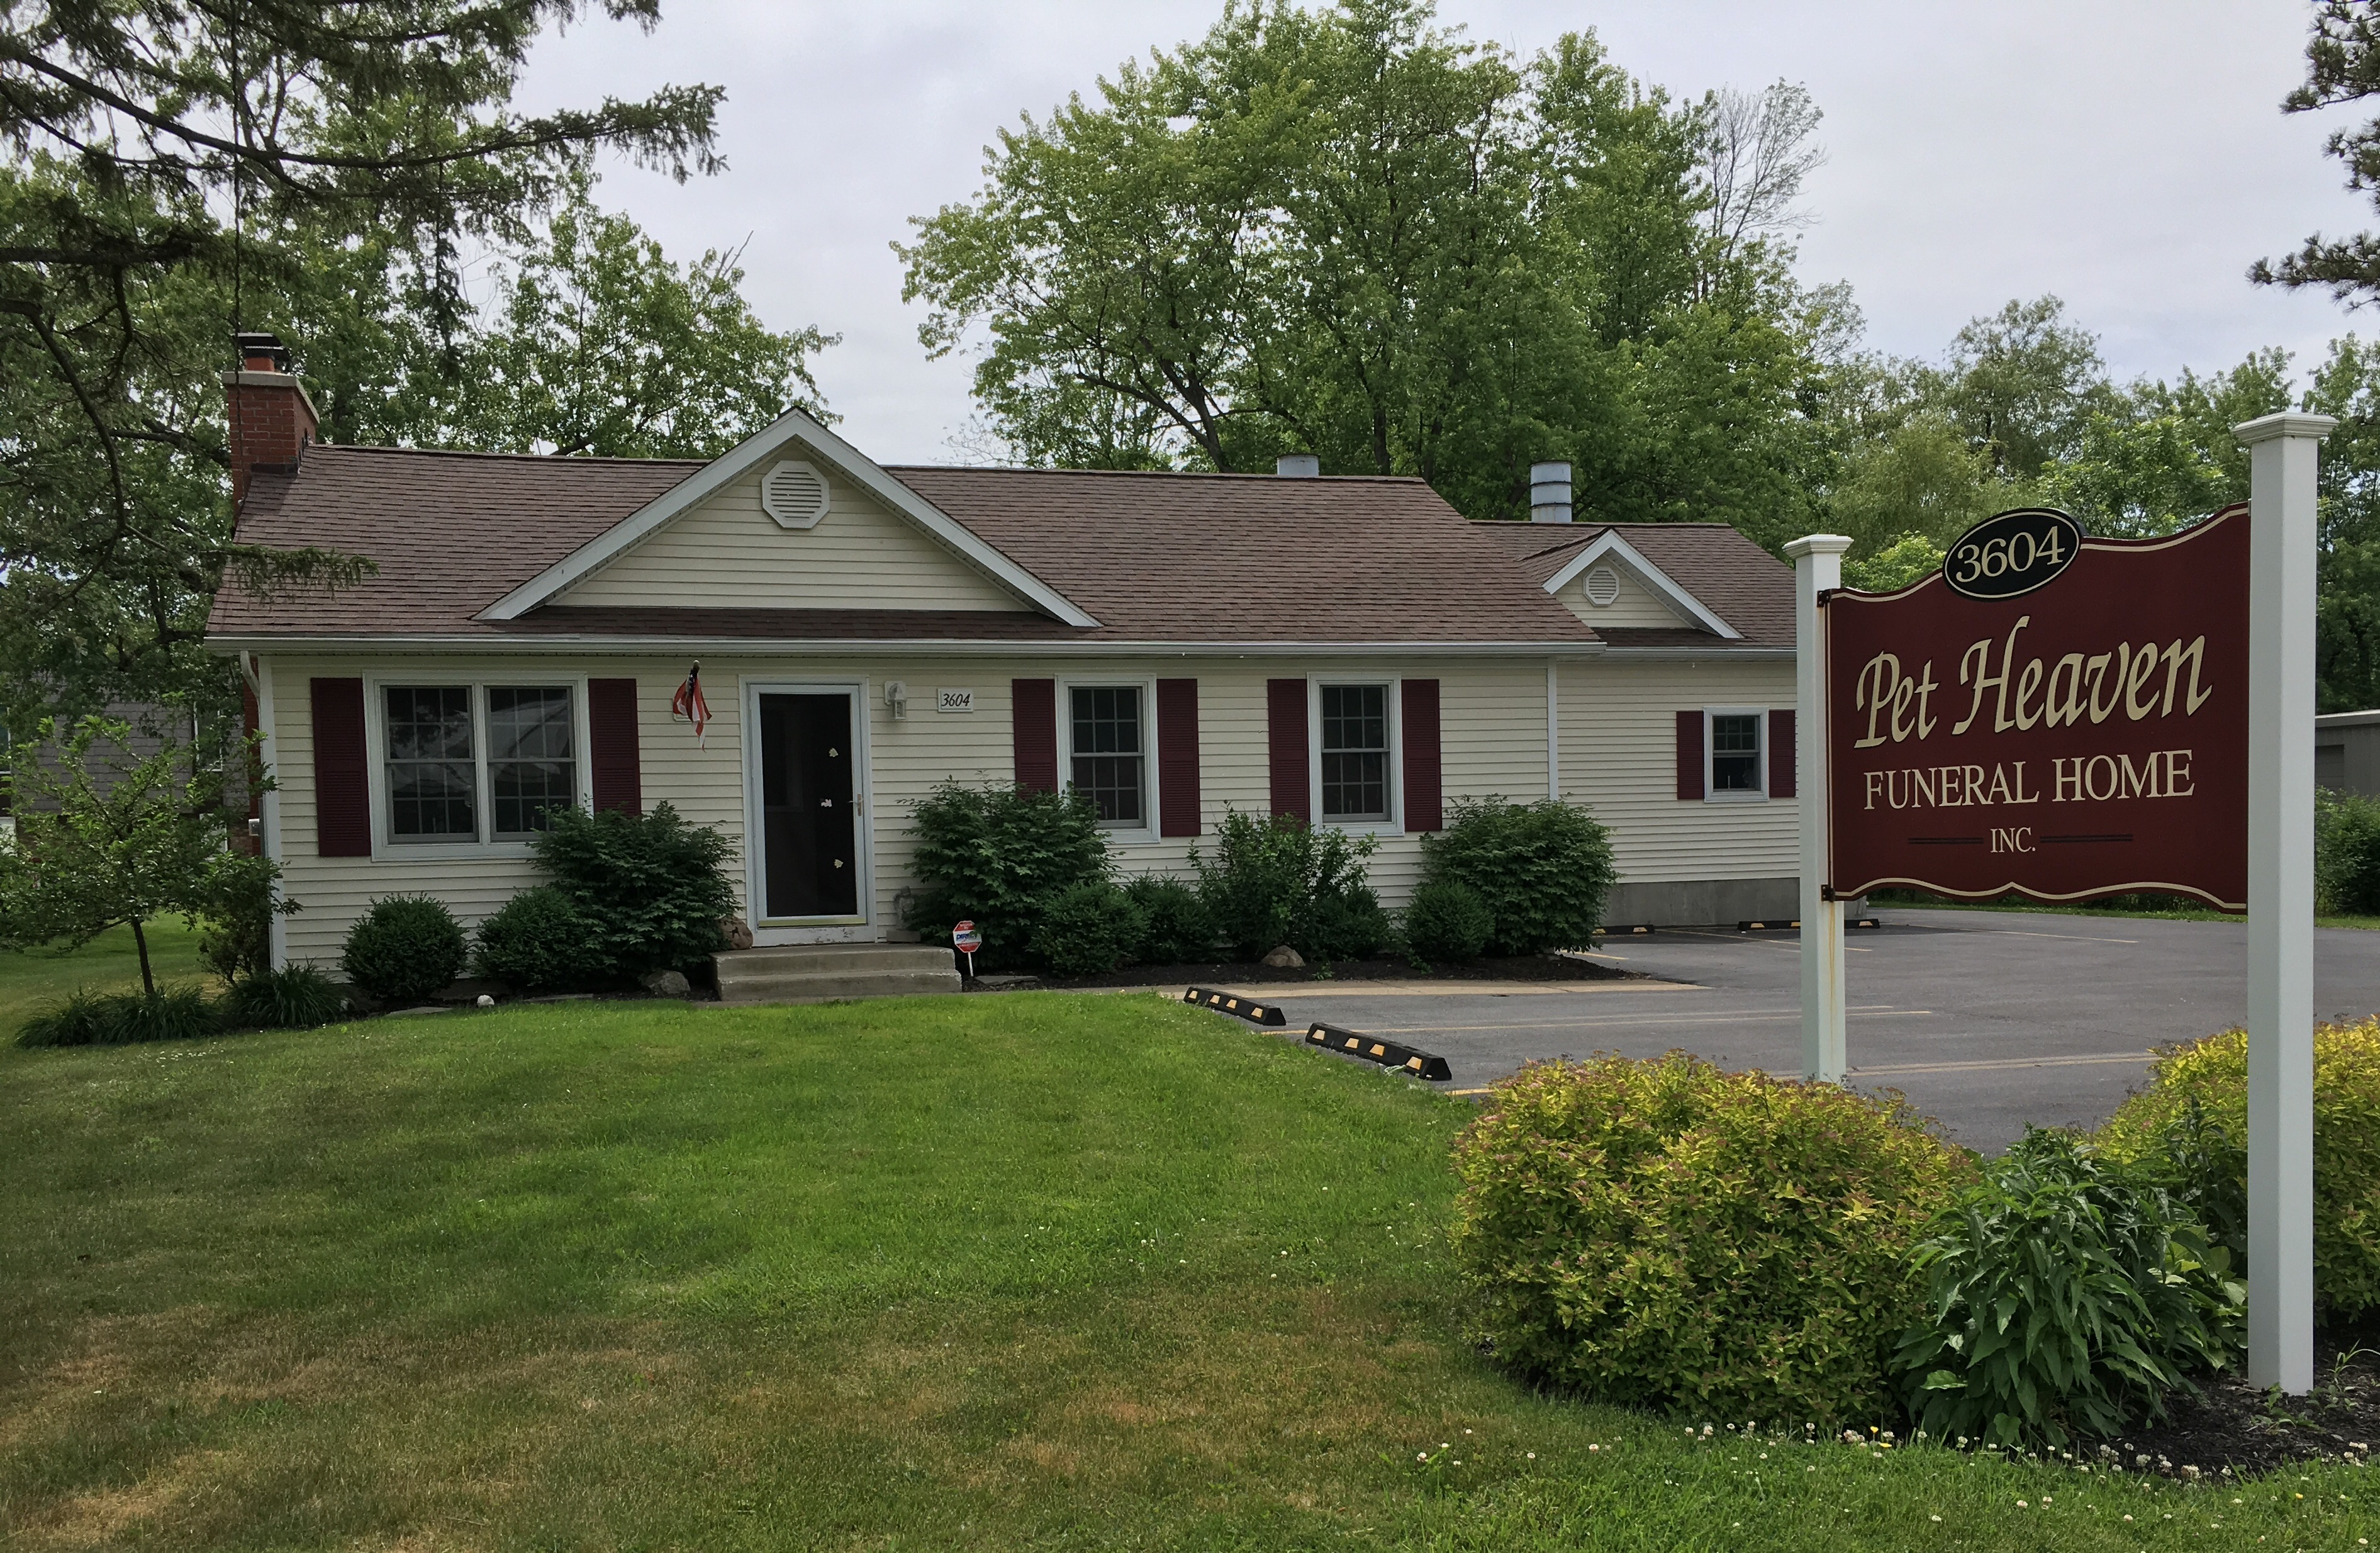 Pet Heaven Funeral Home Inc Orchard Park NY YP